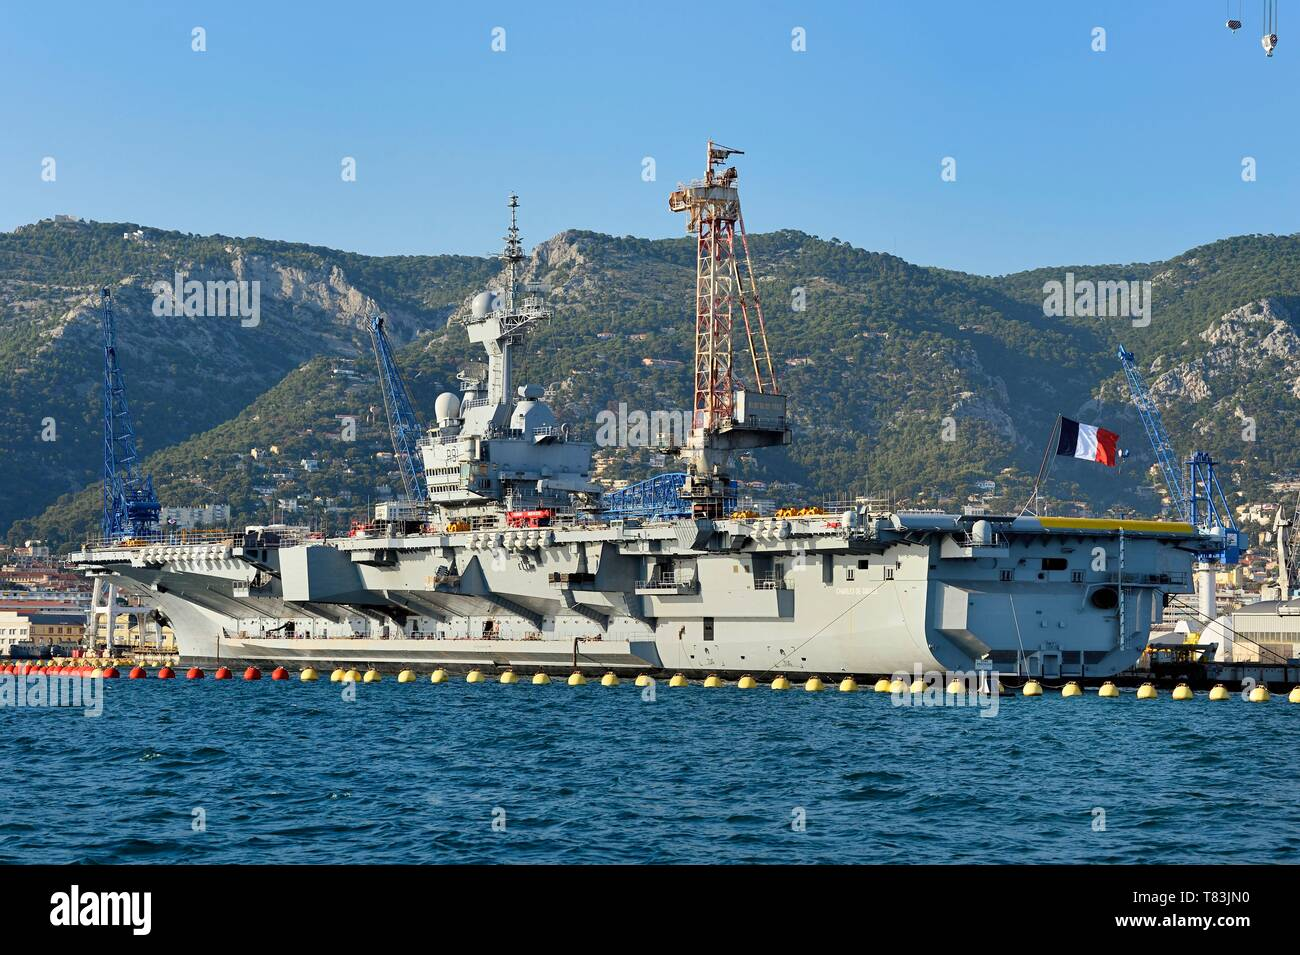 France, Var, Toulon, the naval base (Arsenal), the Charles de Gaulle nuclear powered aircraft carrier on mid life renovation - Stock Image